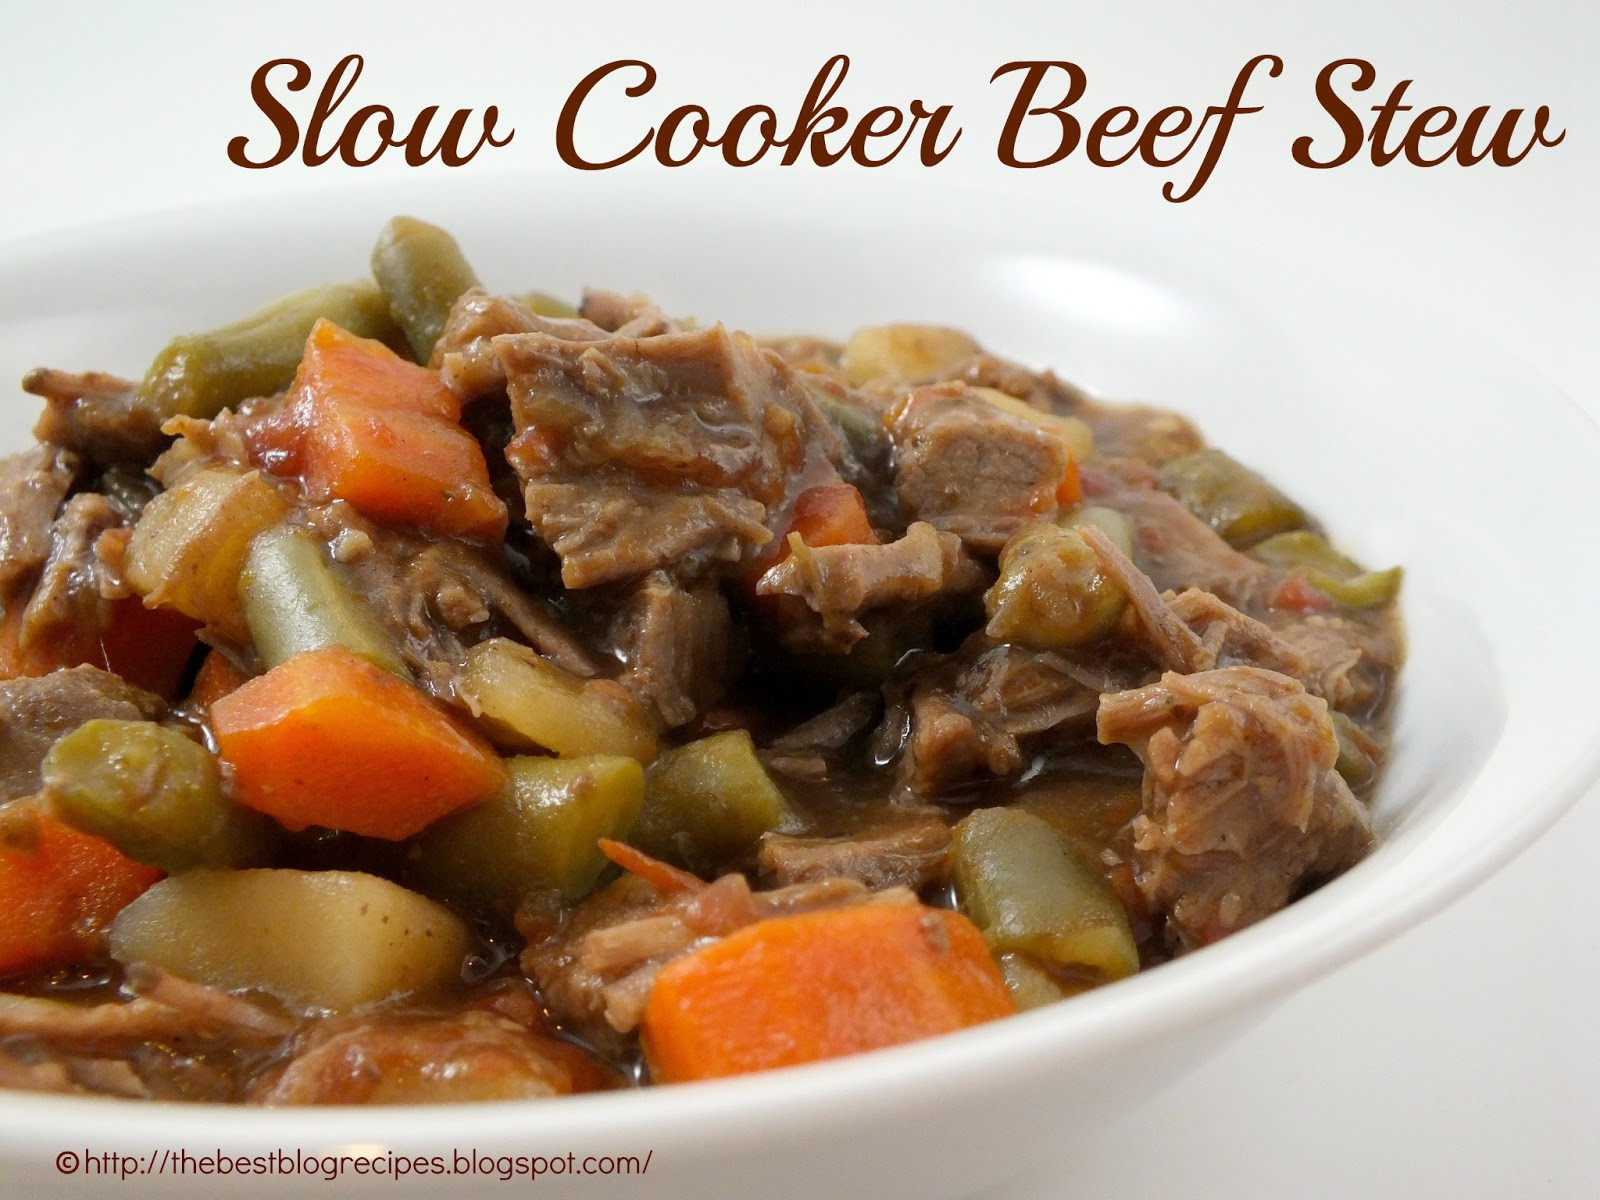 Slow Cooker Beef Stew Recipes  The Best Blog Recipes Slow Cooker Beef Stew